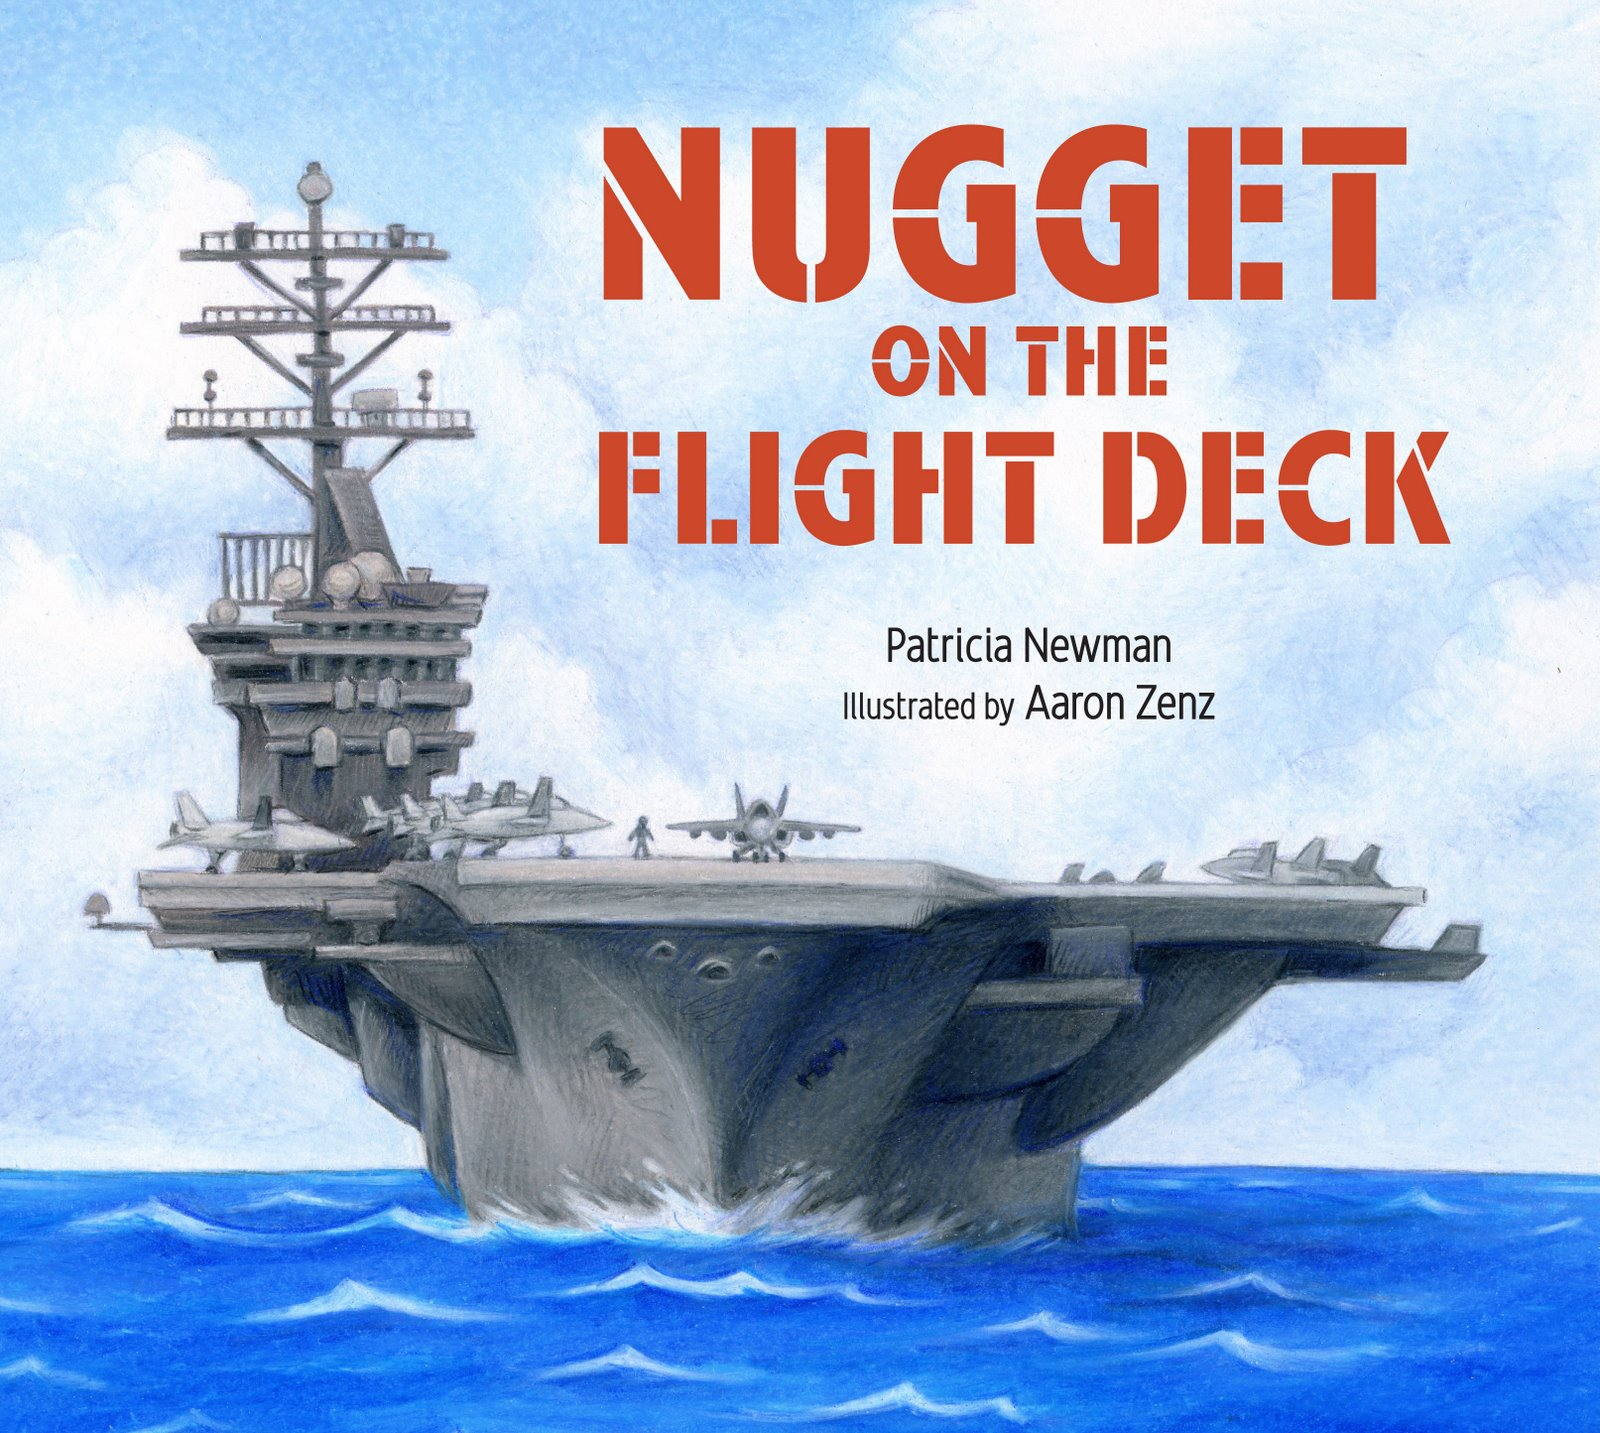 Mrs. Payton's 3rd grade class responds to Nugget on the Flight Deck #3rdchat #ccsschat #titletalk #militaryfamilies